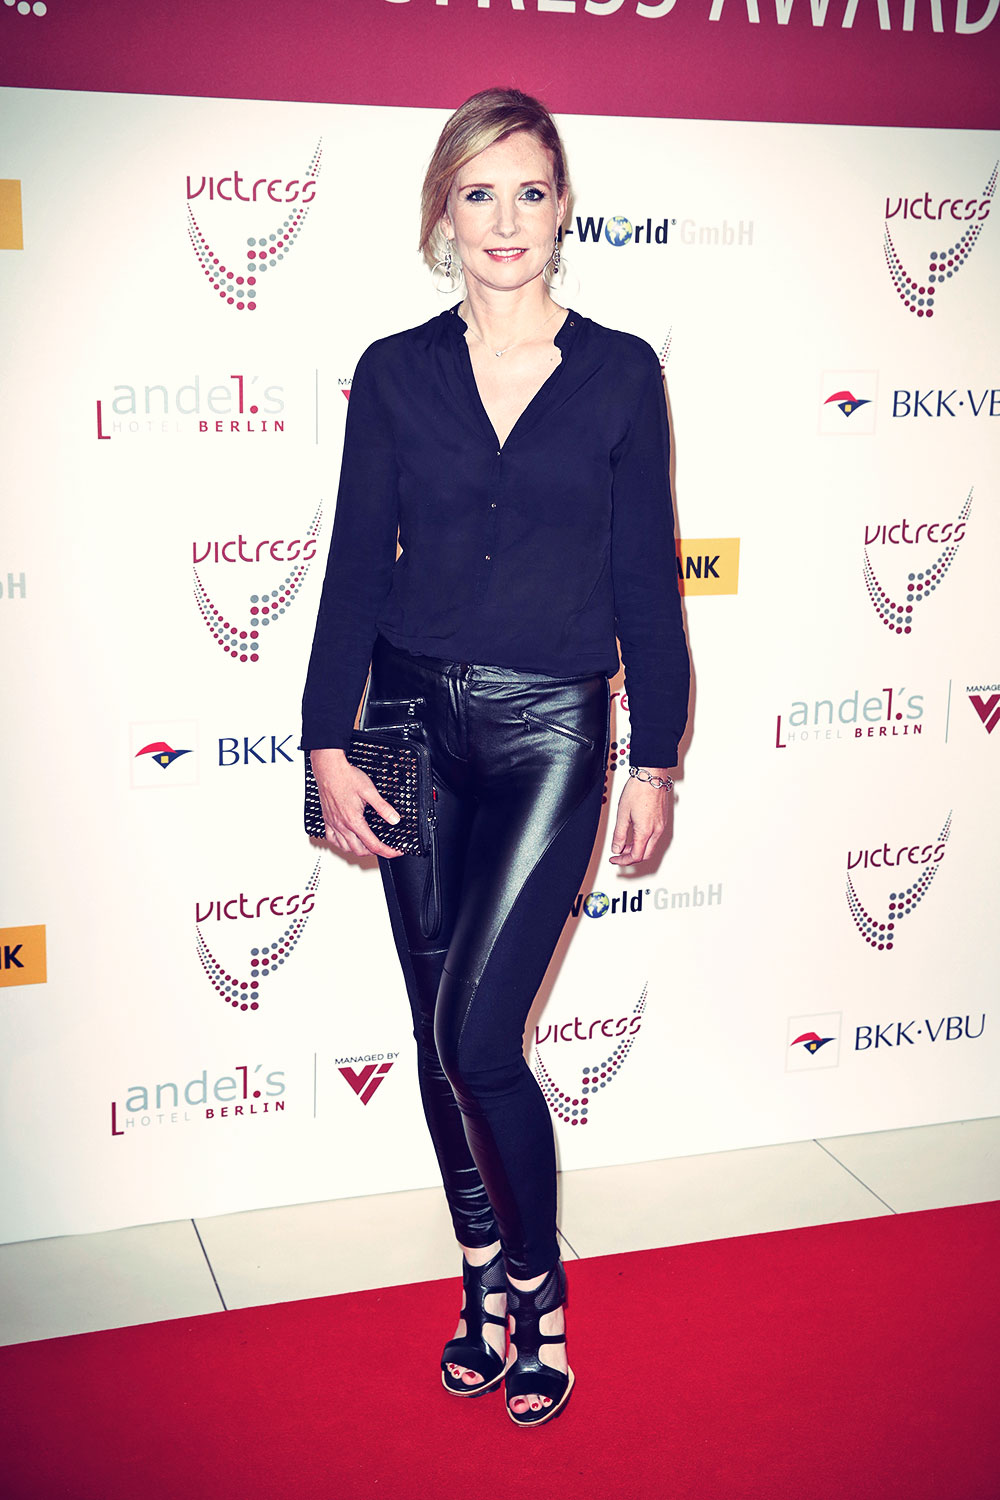 Jette Joop attends the 9th Victress Awards Gala